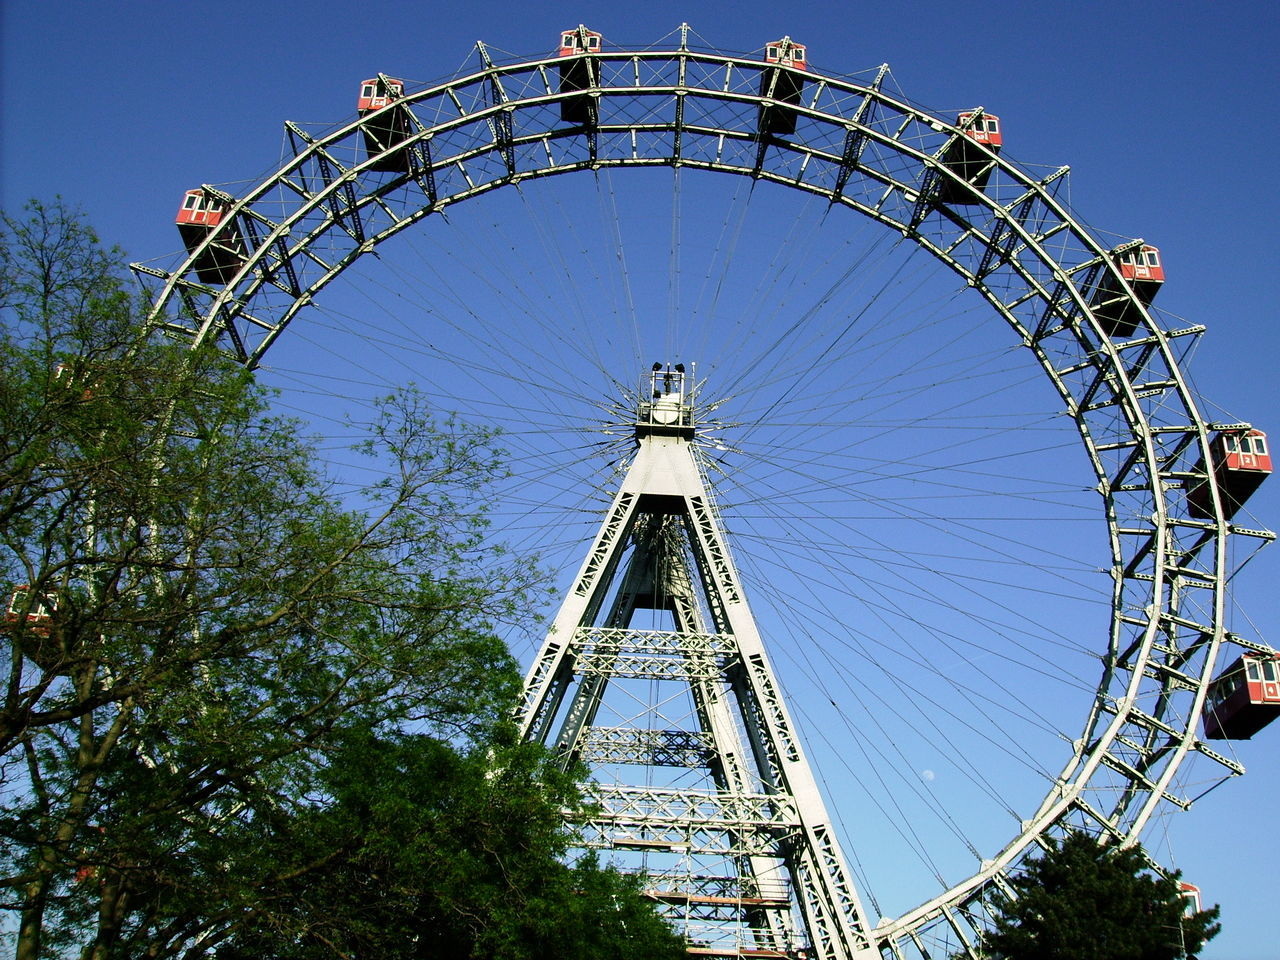 Amusement Park Amusement Park Ride Arts Culture And Entertainment Blue Day Ferris Wheel Large Build Large Group Of People Leisure Activity Outdoors People Riesenrad Riesenrad Wien Sky Traveling Carnival